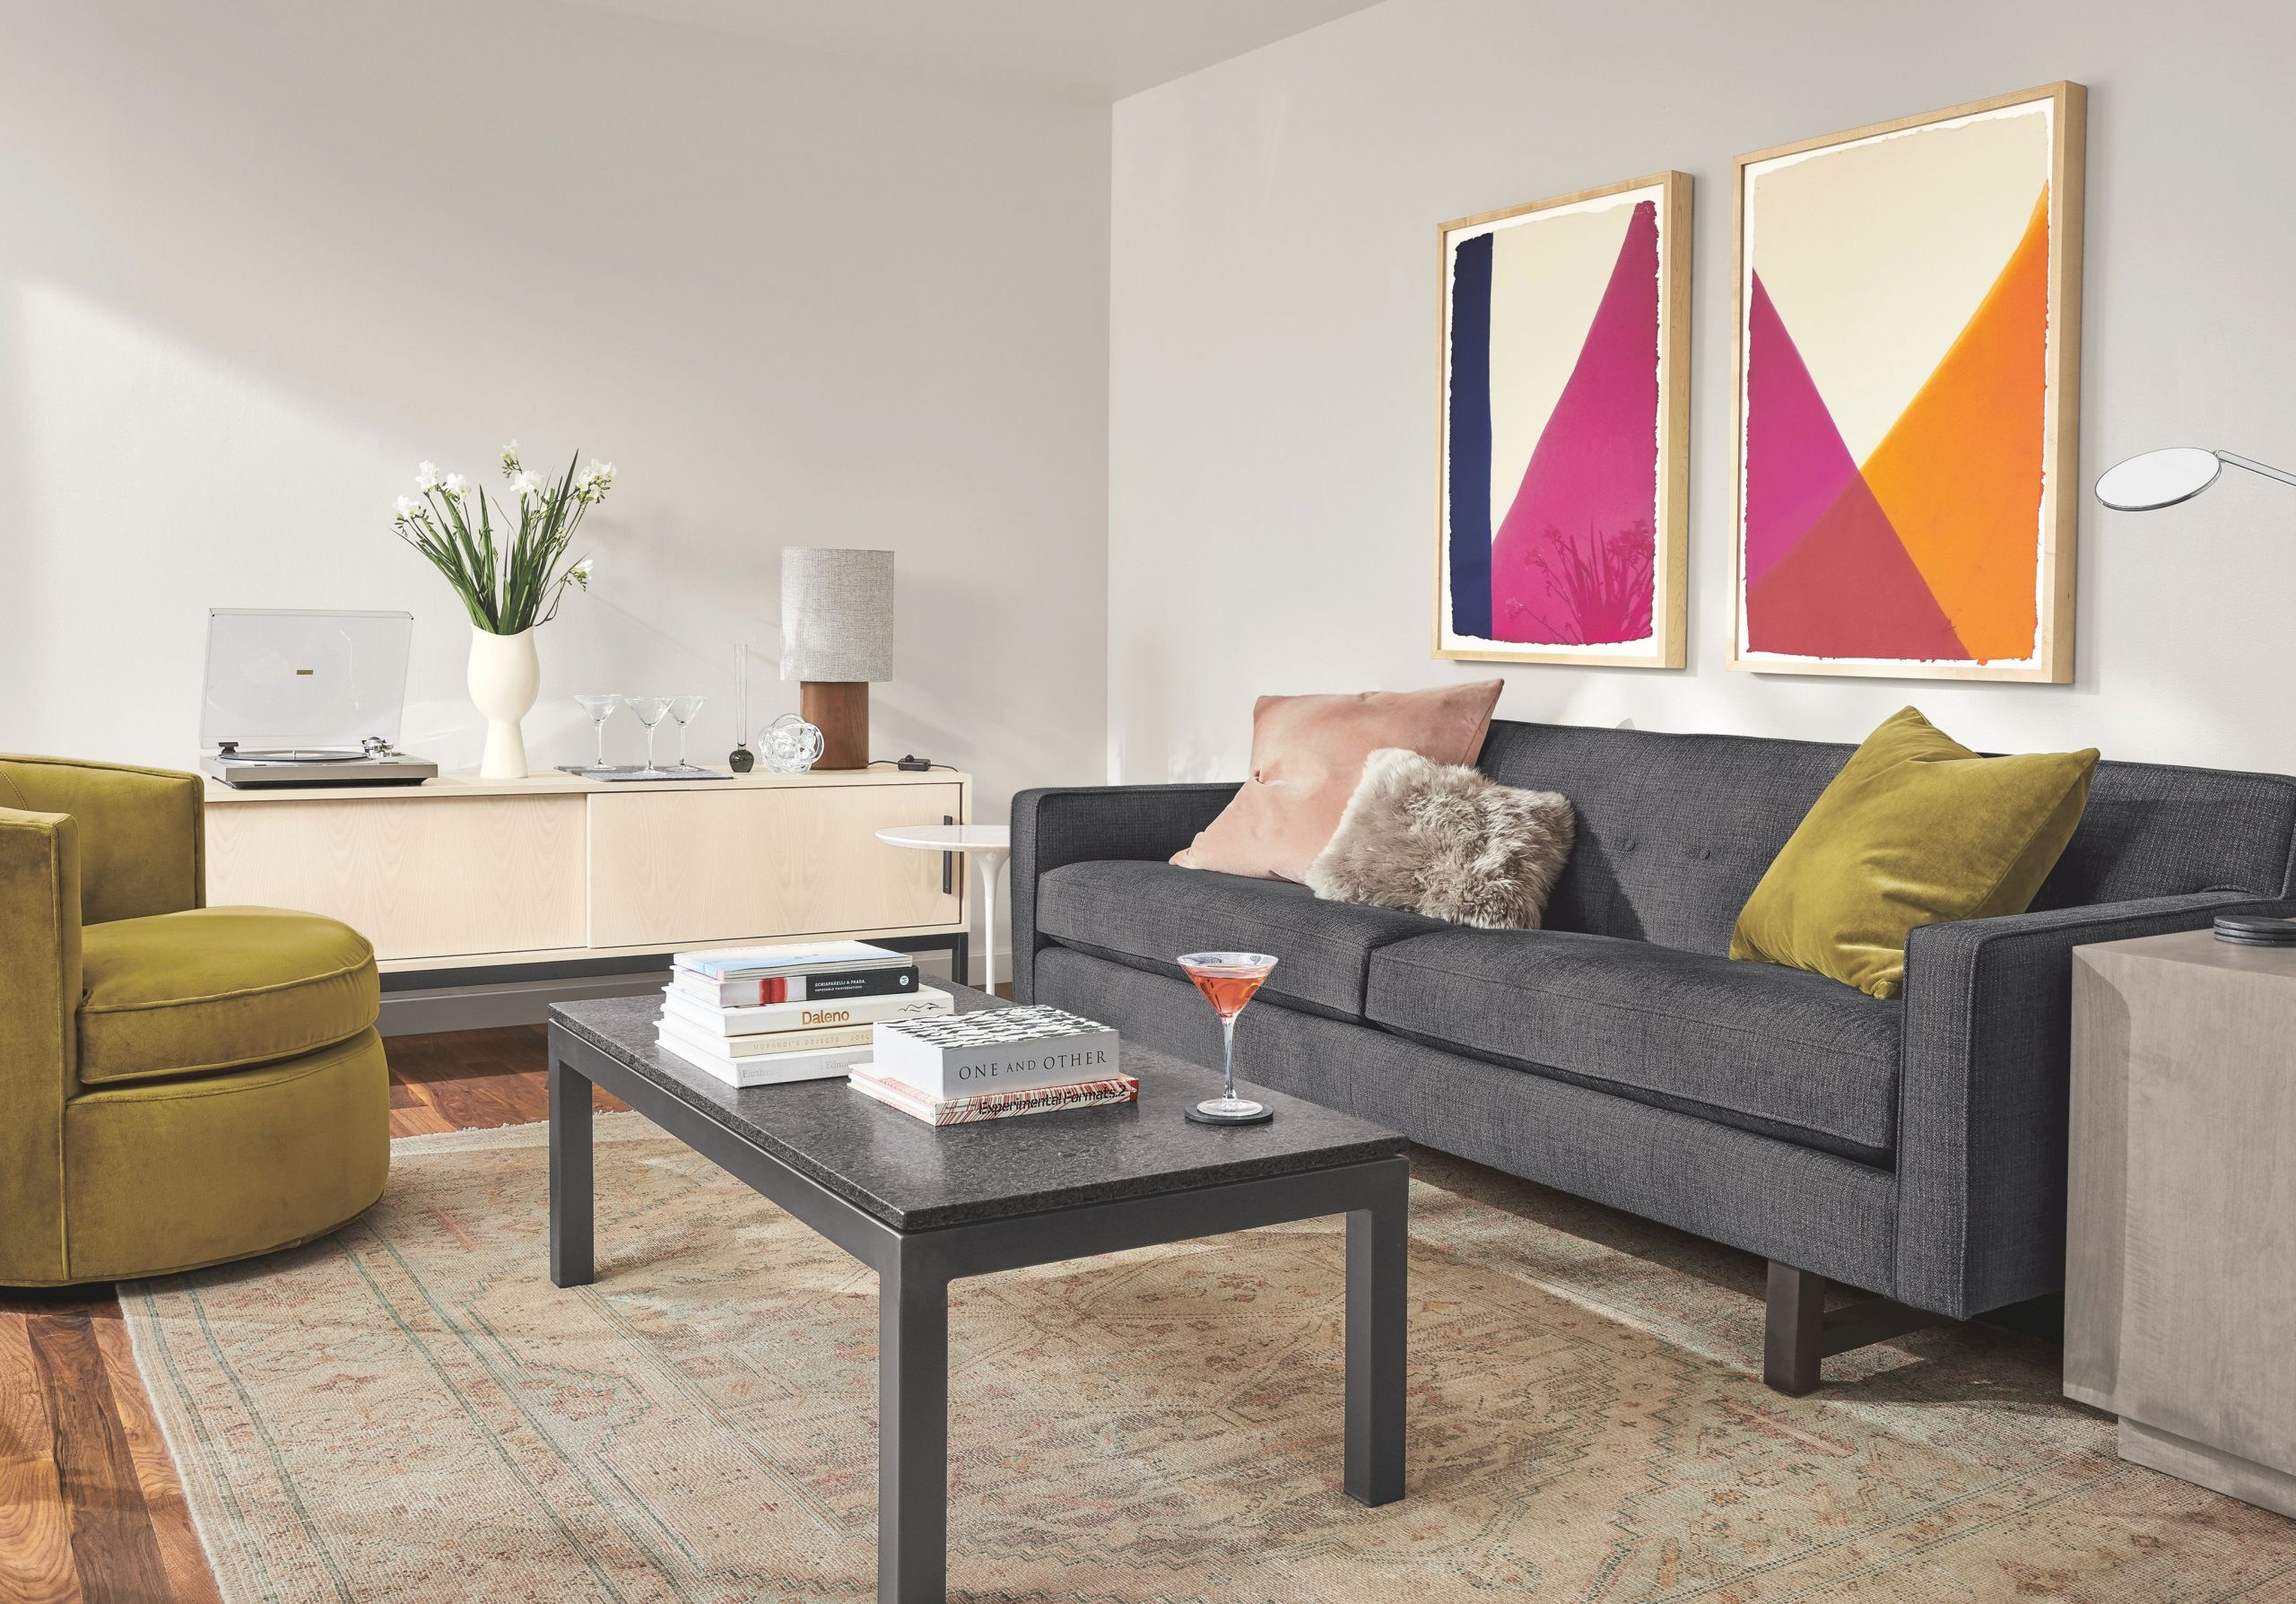 Decorating Ideas For A Small Living Room – Room & Board throughout Small Living Room Decorating Ideas